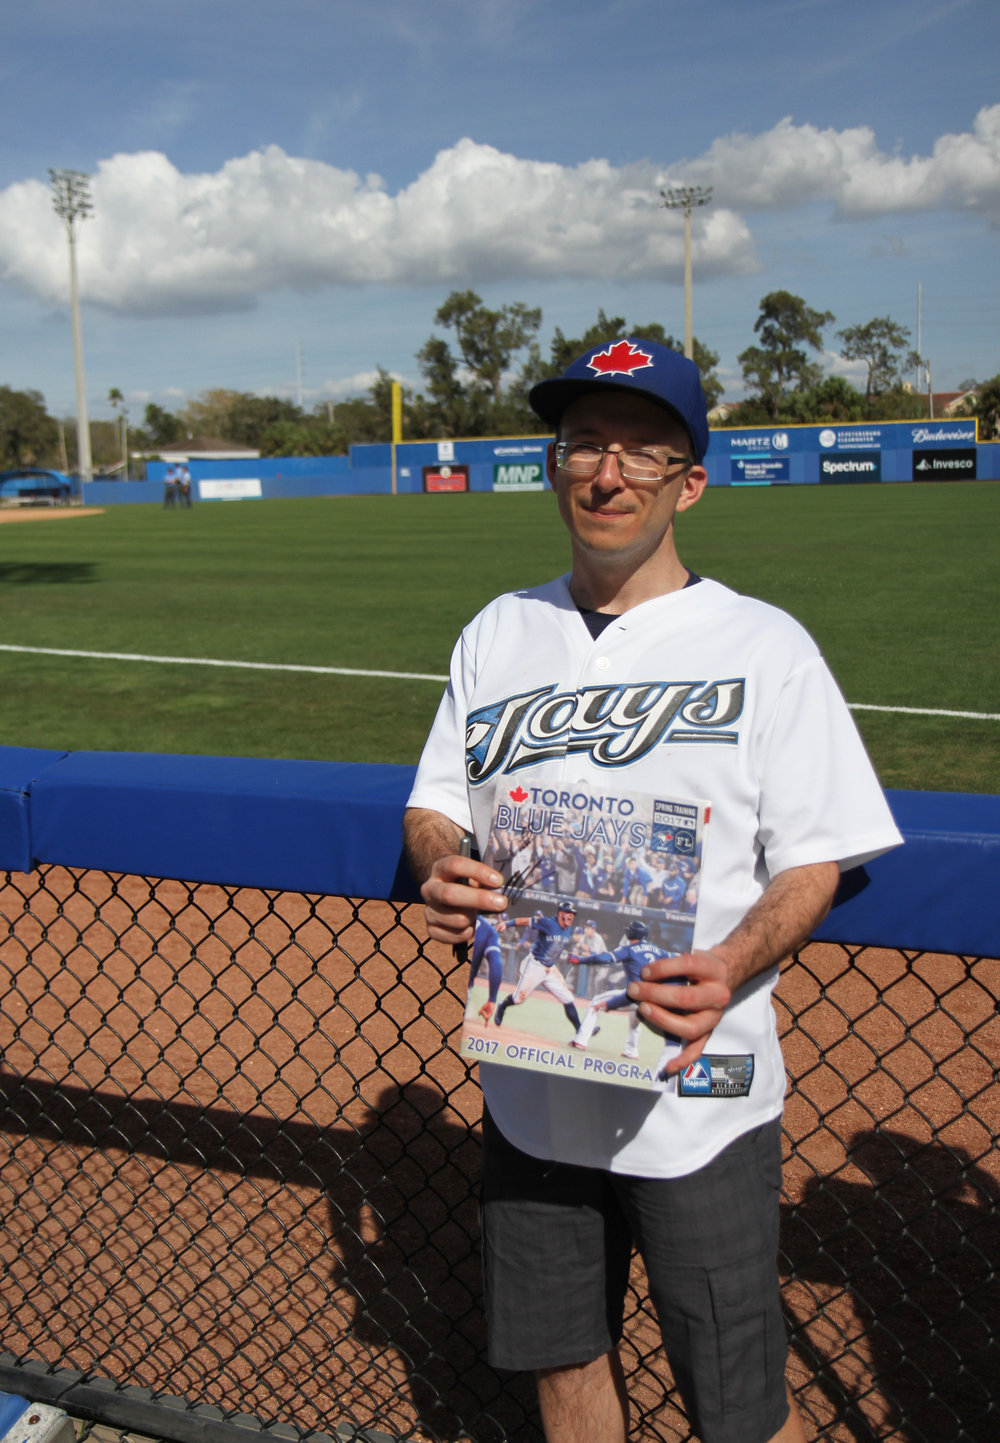 Blue Jays fan Matt Harvey, seen here at spring training in Dunedin, says being on the autism spectrum helps him keep tabs on his favourite team. Photo: Matt Antonacci